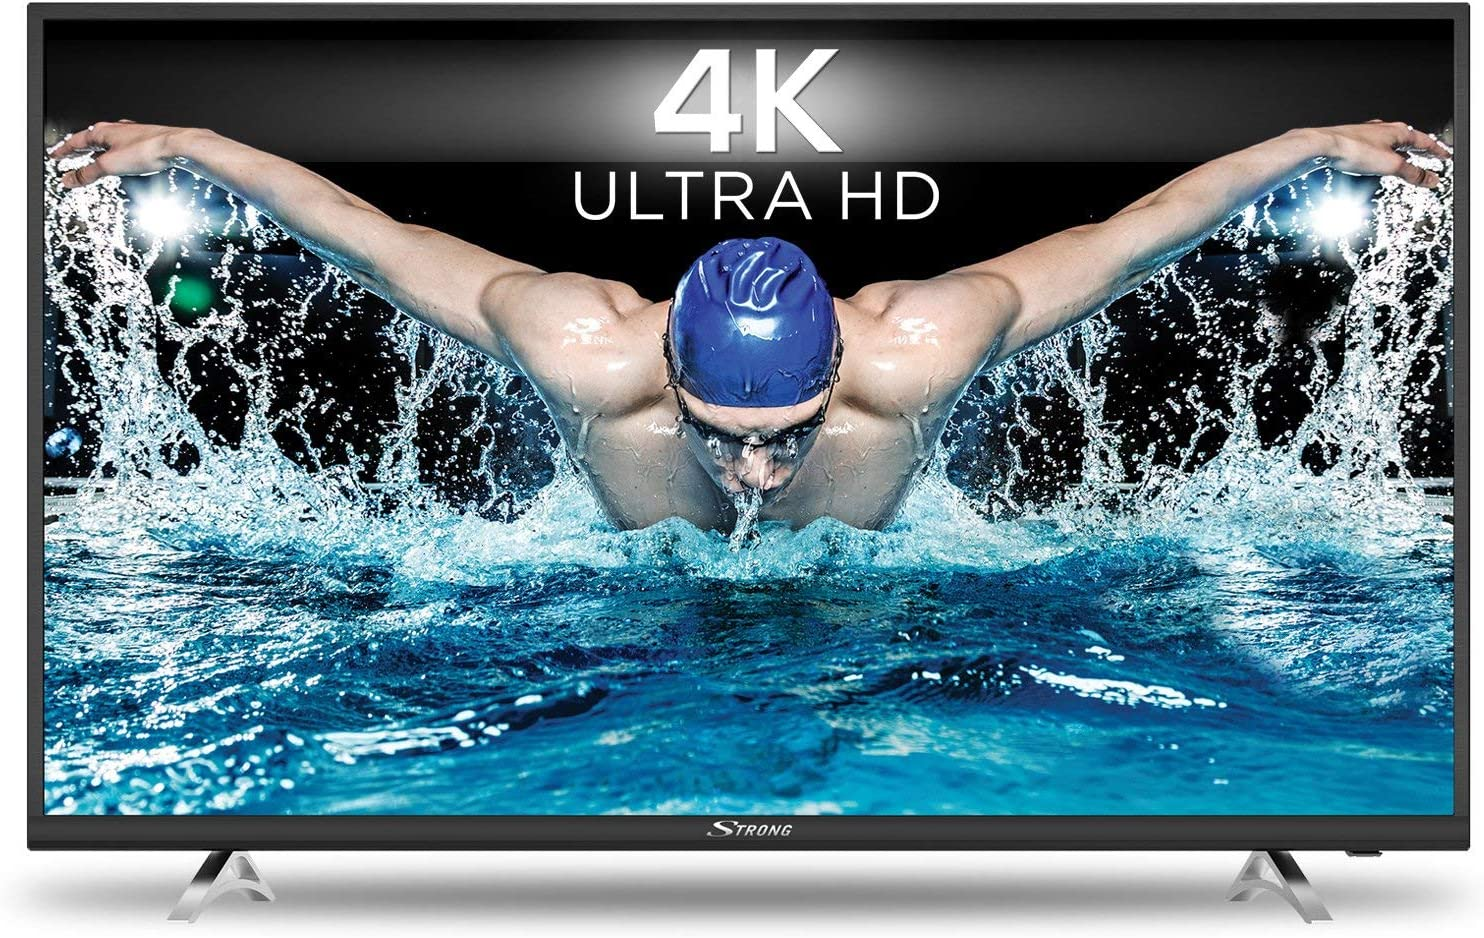 STRONG SRT 49UA6203 UHD Smart TV HDR – 4K Televisores LED 49 Pulgadas, 123 cm (Netflix, Youtube) negro: Amazon.es: Electrónica